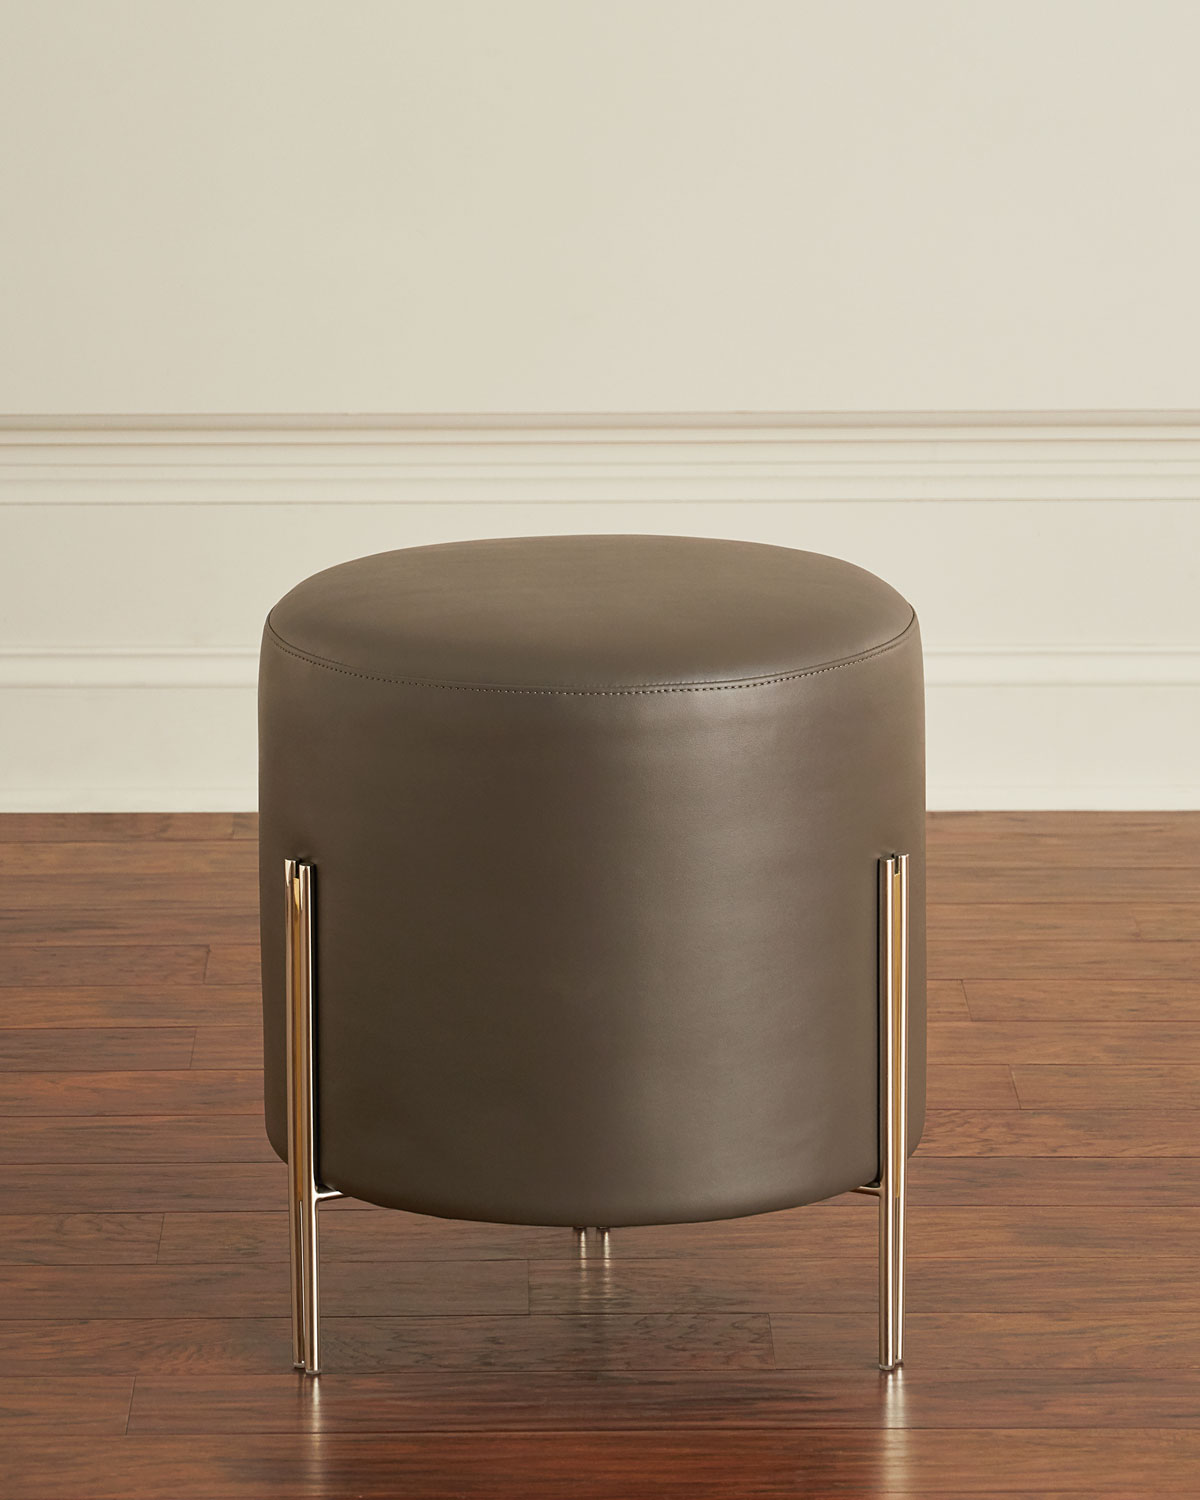 Enjoyable Betina Faux Leather Round Ottoman Stool Cjindustries Chair Design For Home Cjindustriesco